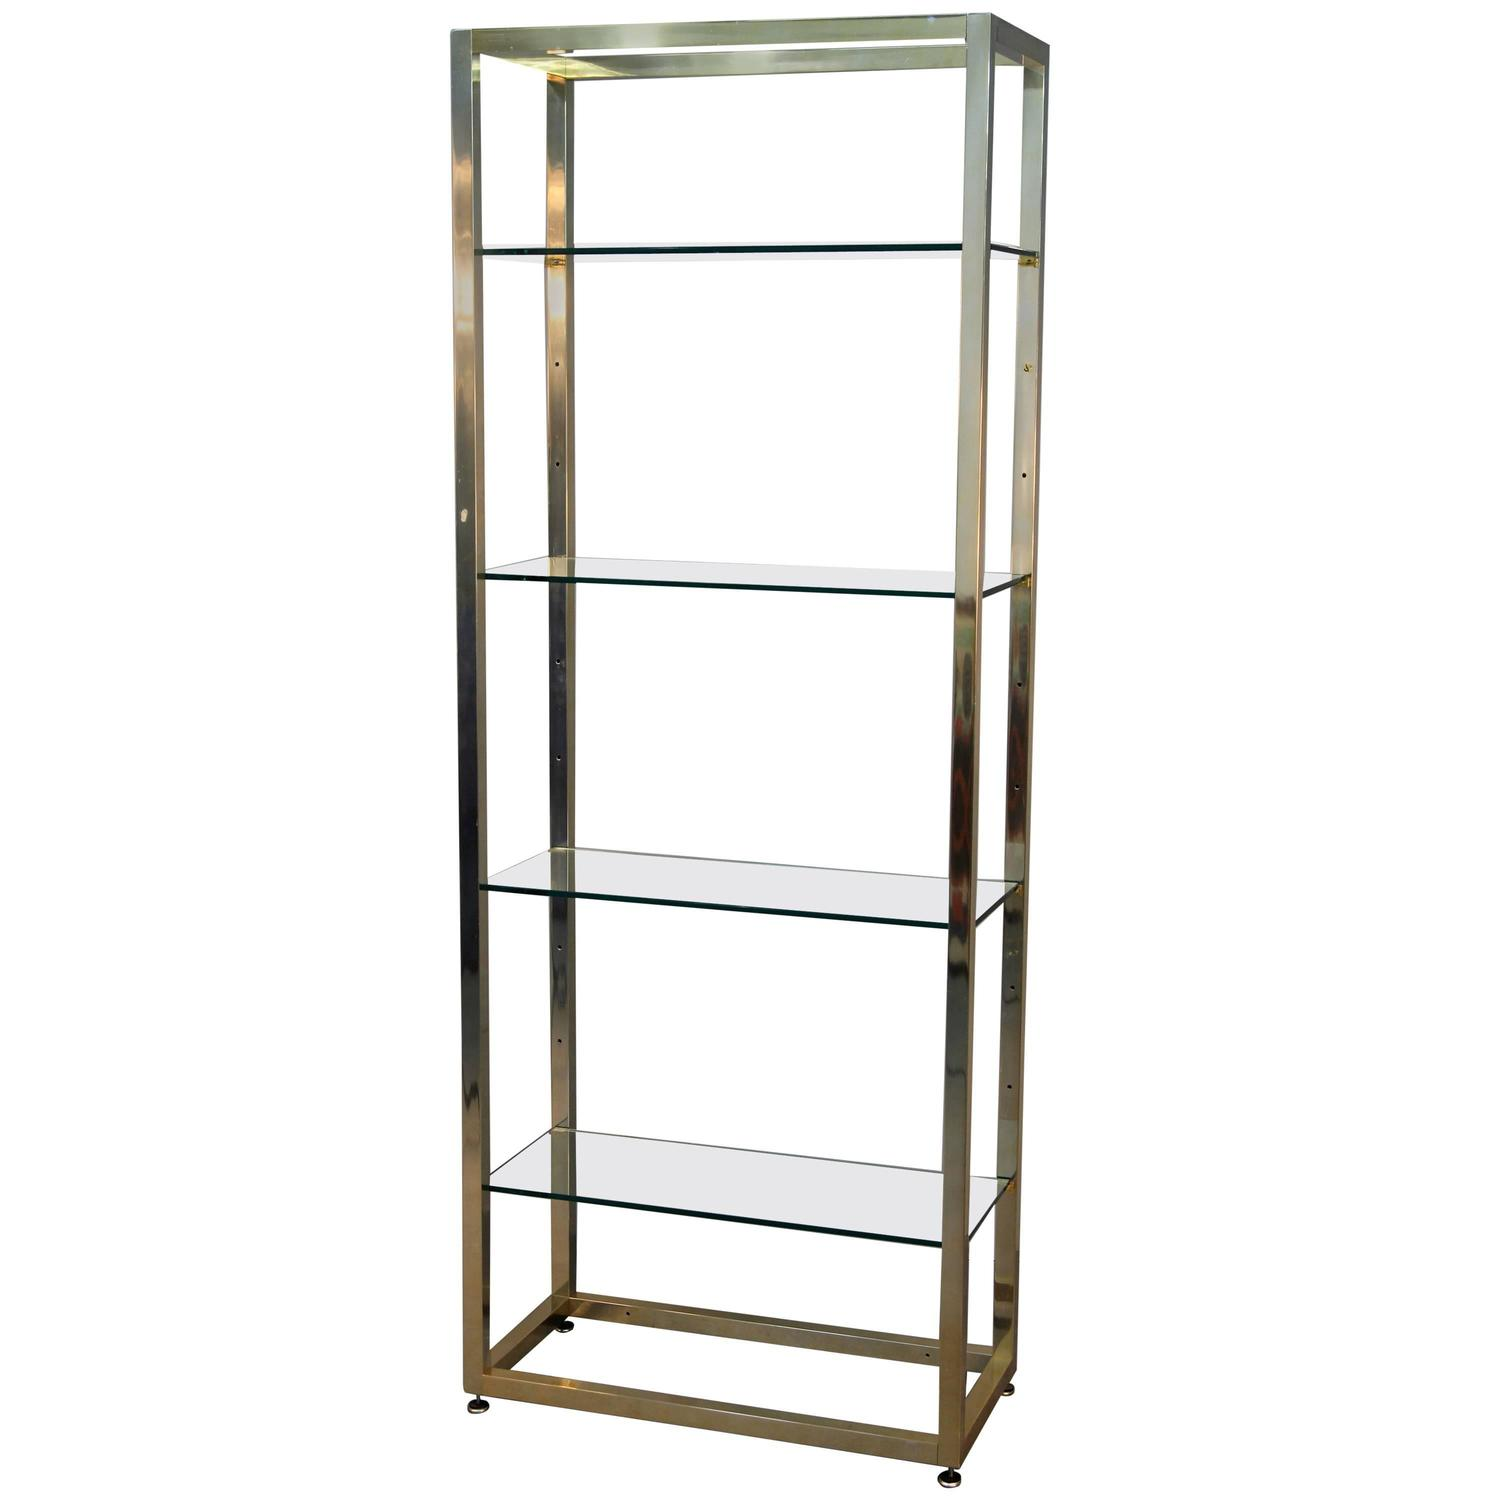 Brass And Glass Etagere For Sale At 1stdibs. Coastal Upholstery Fabric. Makeup Mirror. Patio Construction. Open Kitchen Design. Aquascape Pools. Tall End Tables. Vega Roofing. Bench With Arms